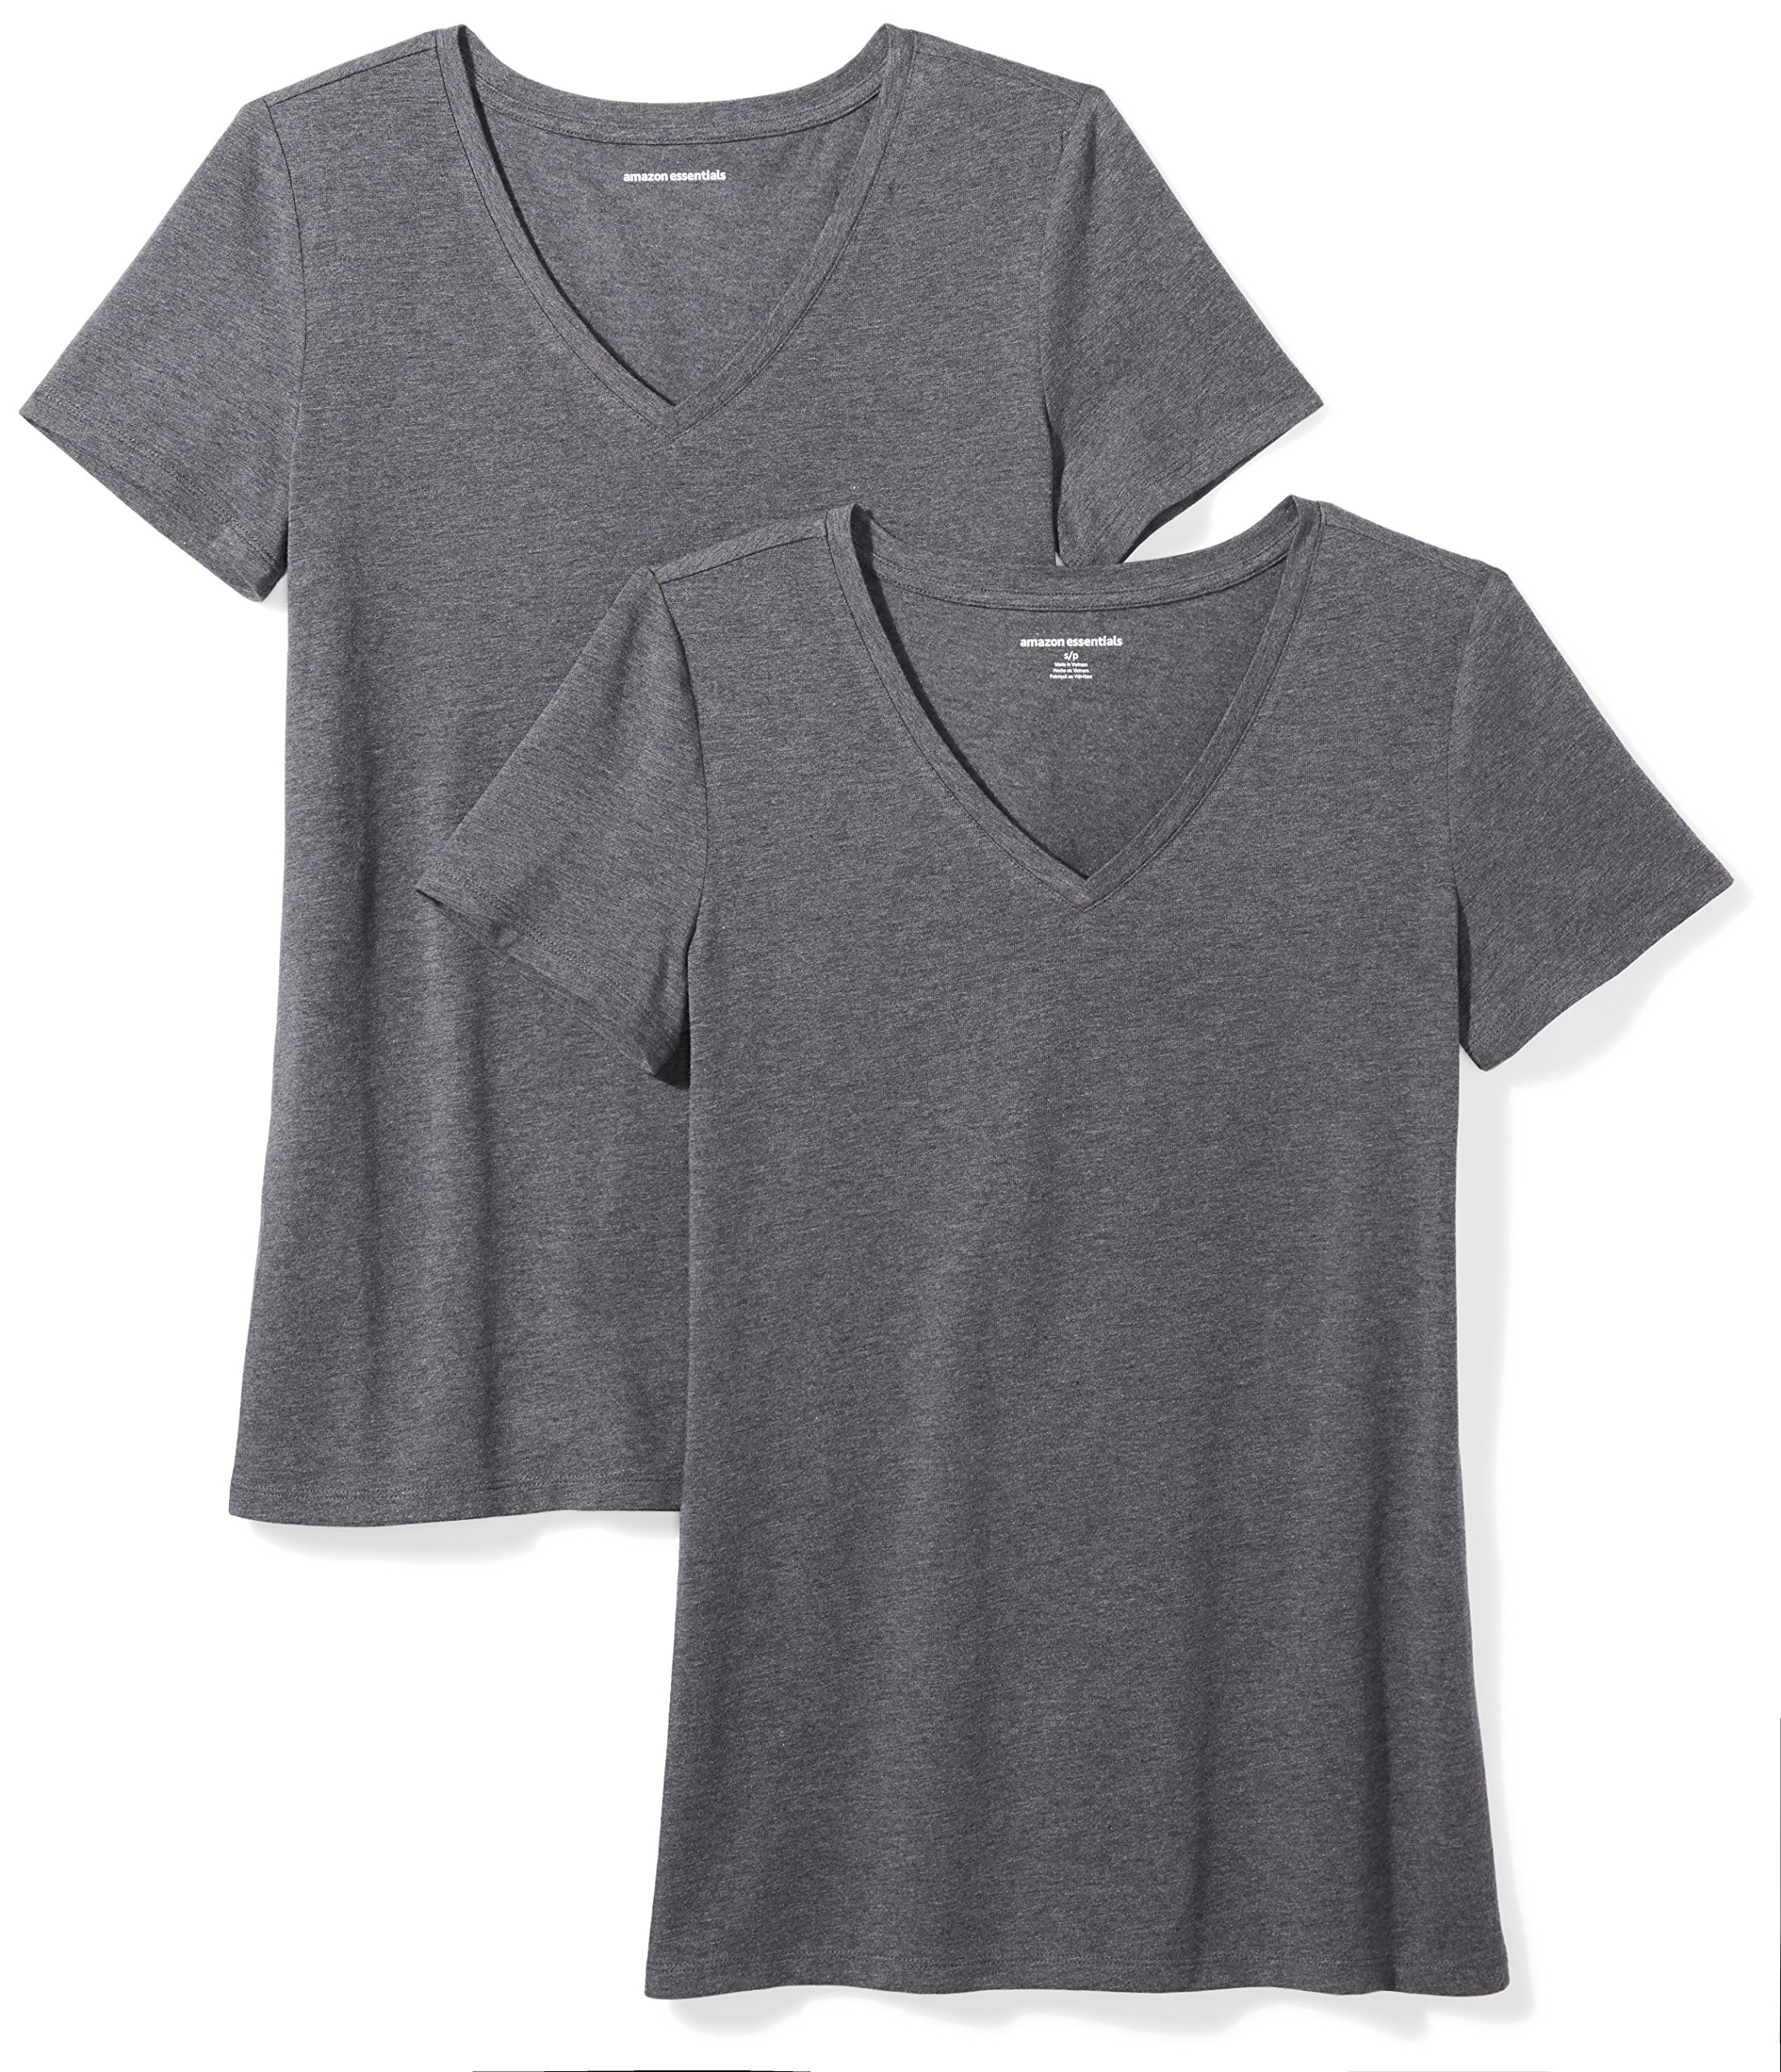 Amazon Essentials Women's 2-Pack Short-Sleeve V-Neck Solid T-Shirt, Charcoal Heather, Large